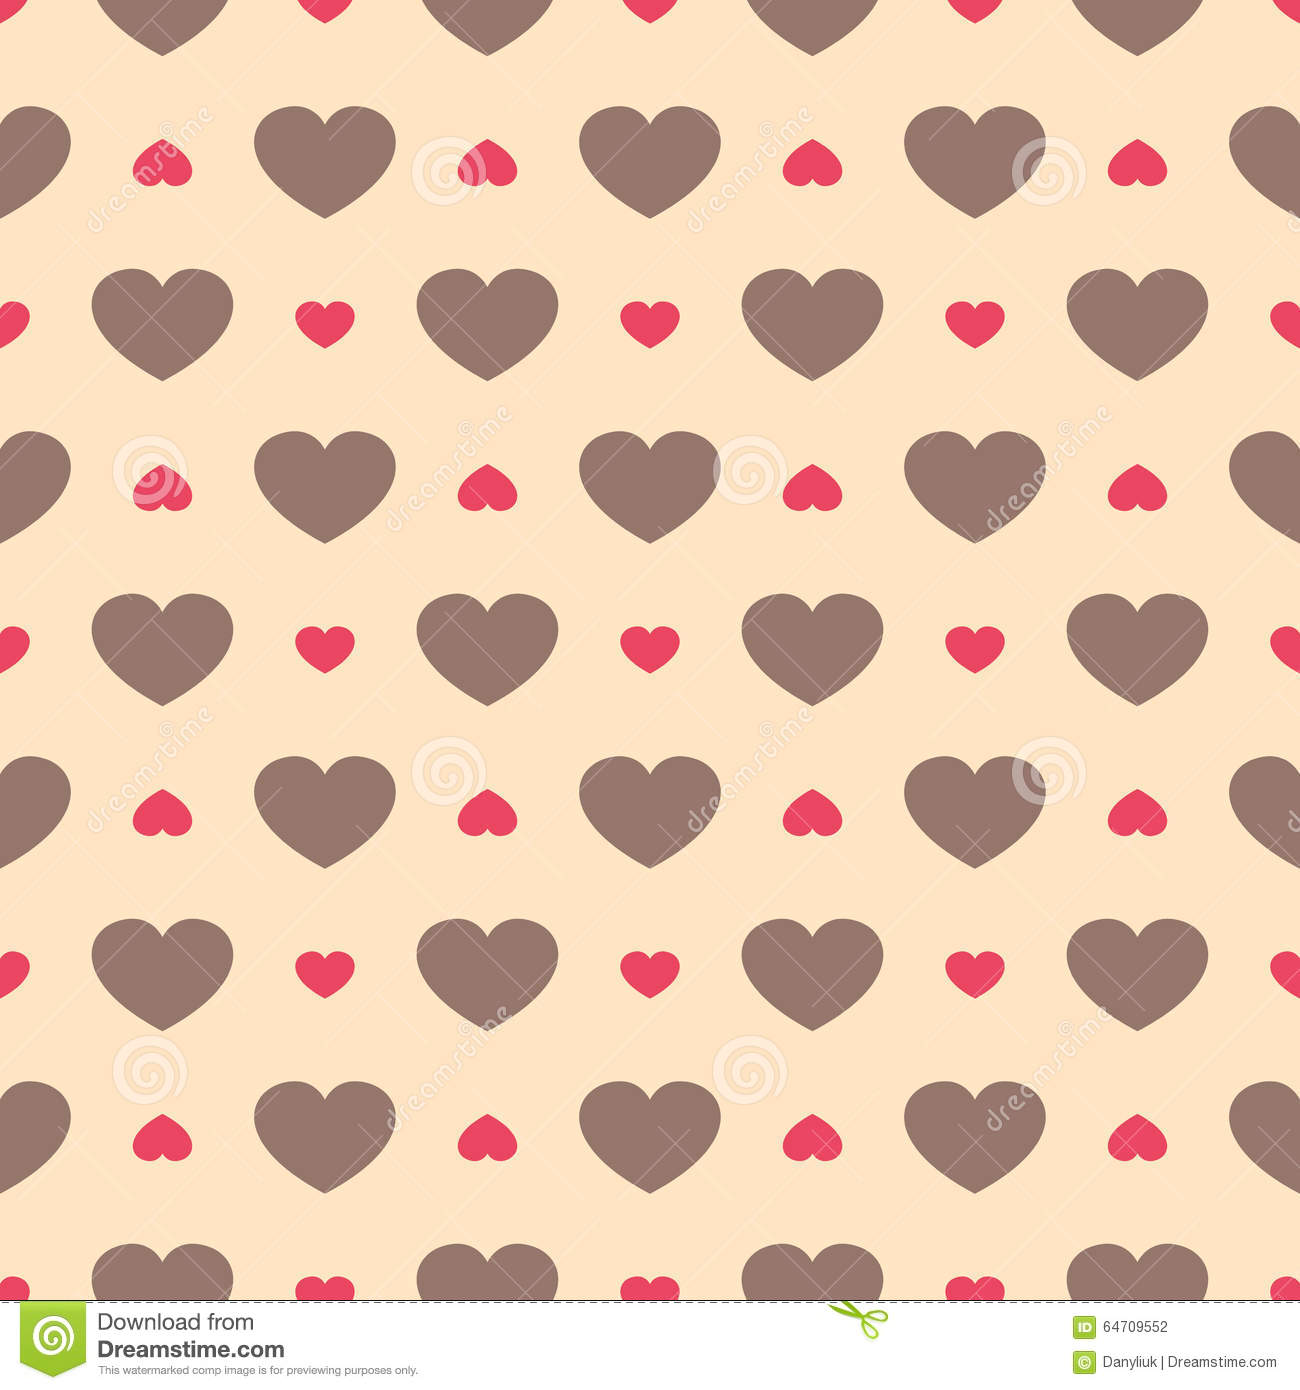 Wallpapers pattern fills web page backgrounds surface textures - Cute Retro Abstract Seamless Pattern Can Be Used For Wallpaper Cover Fills Web